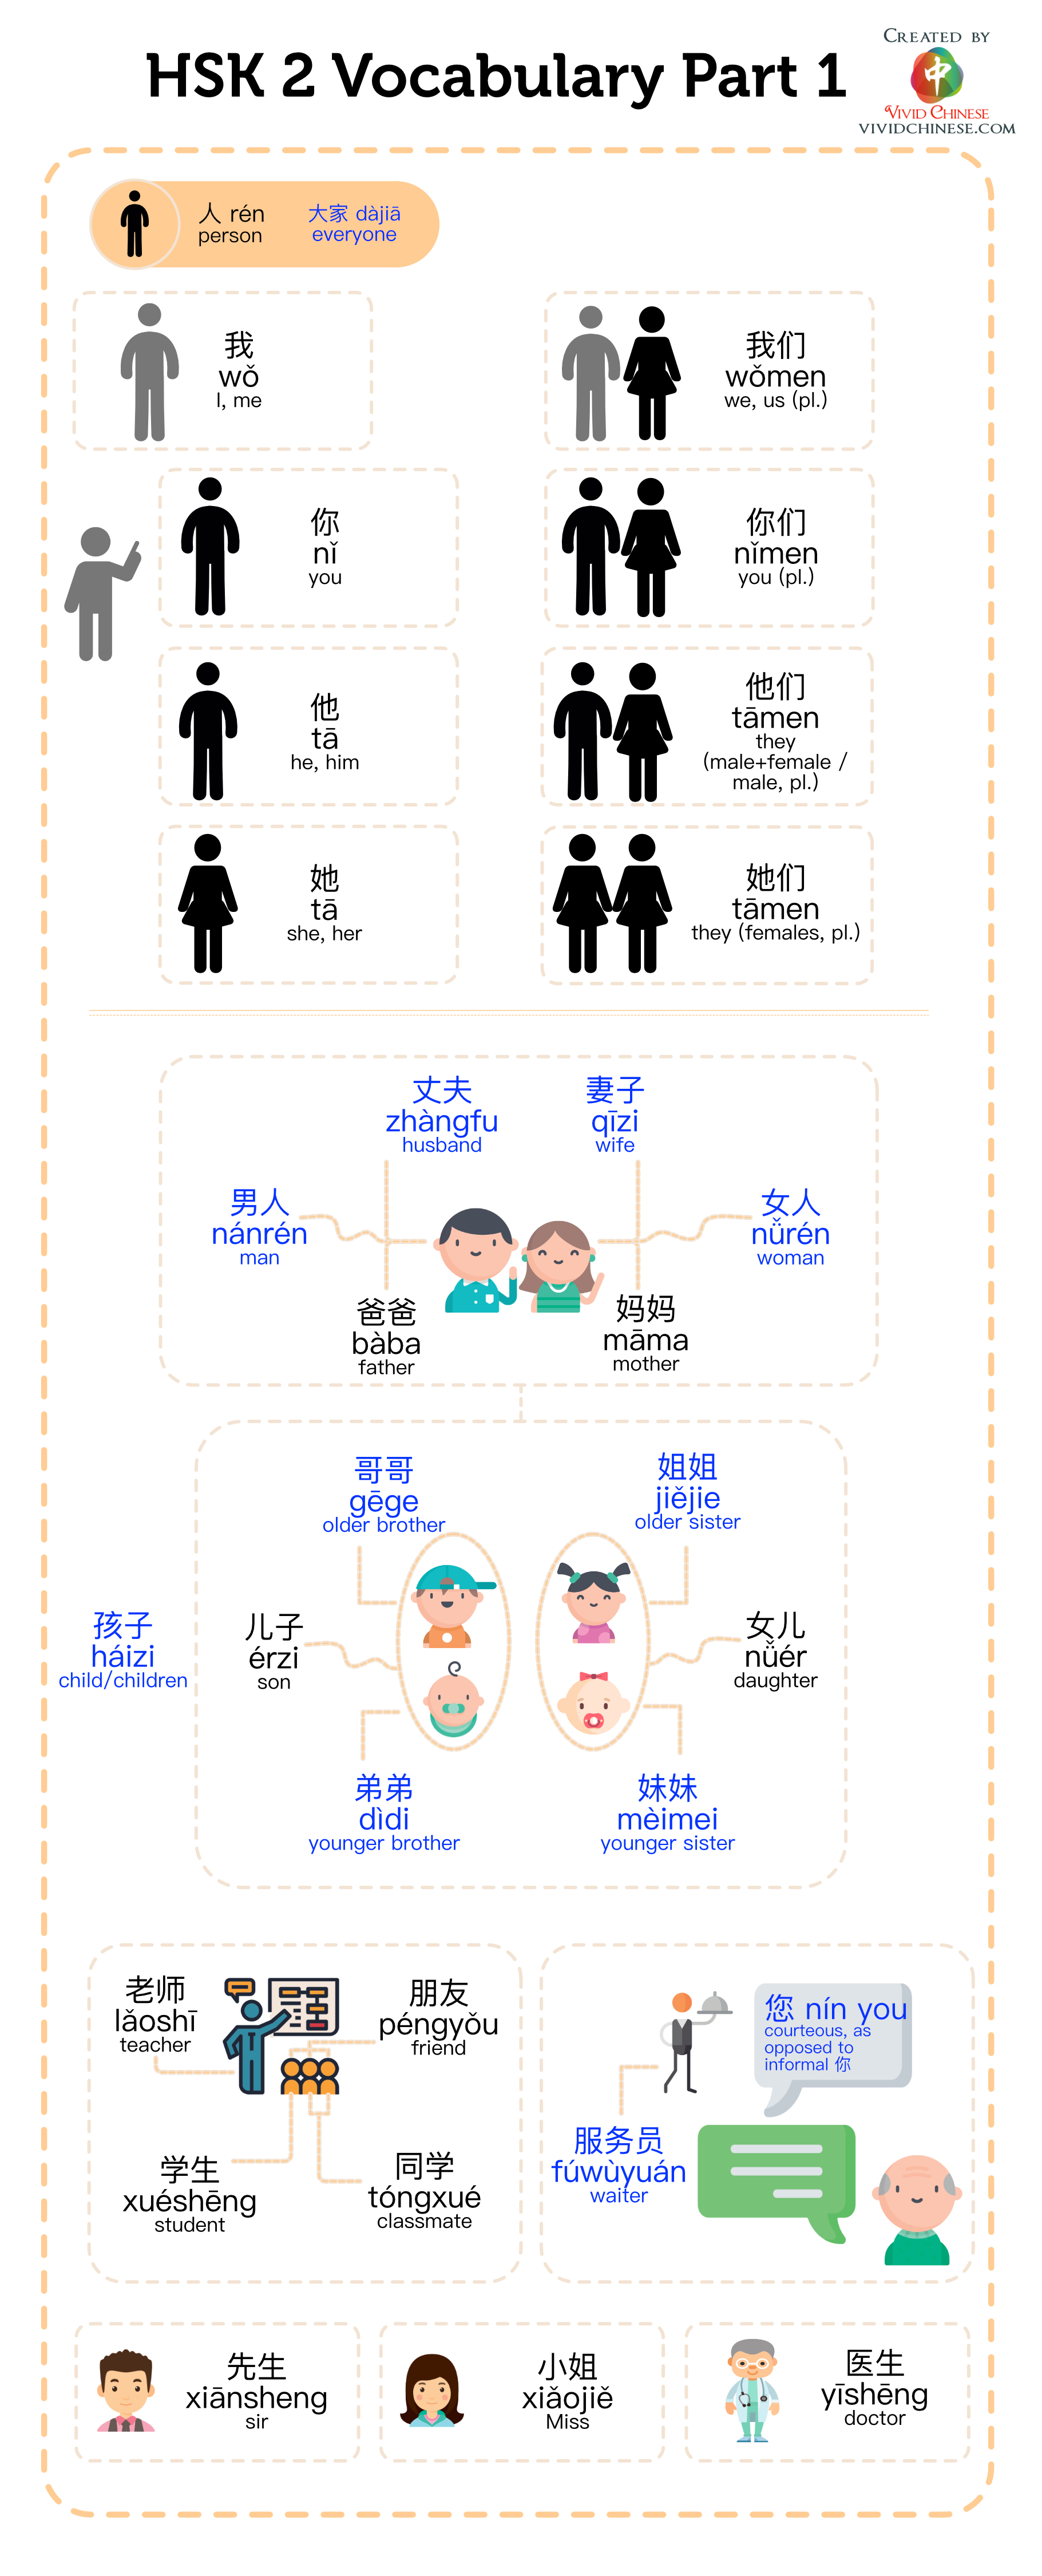 HSK 2 Vocabulary (Part 1) Infographic